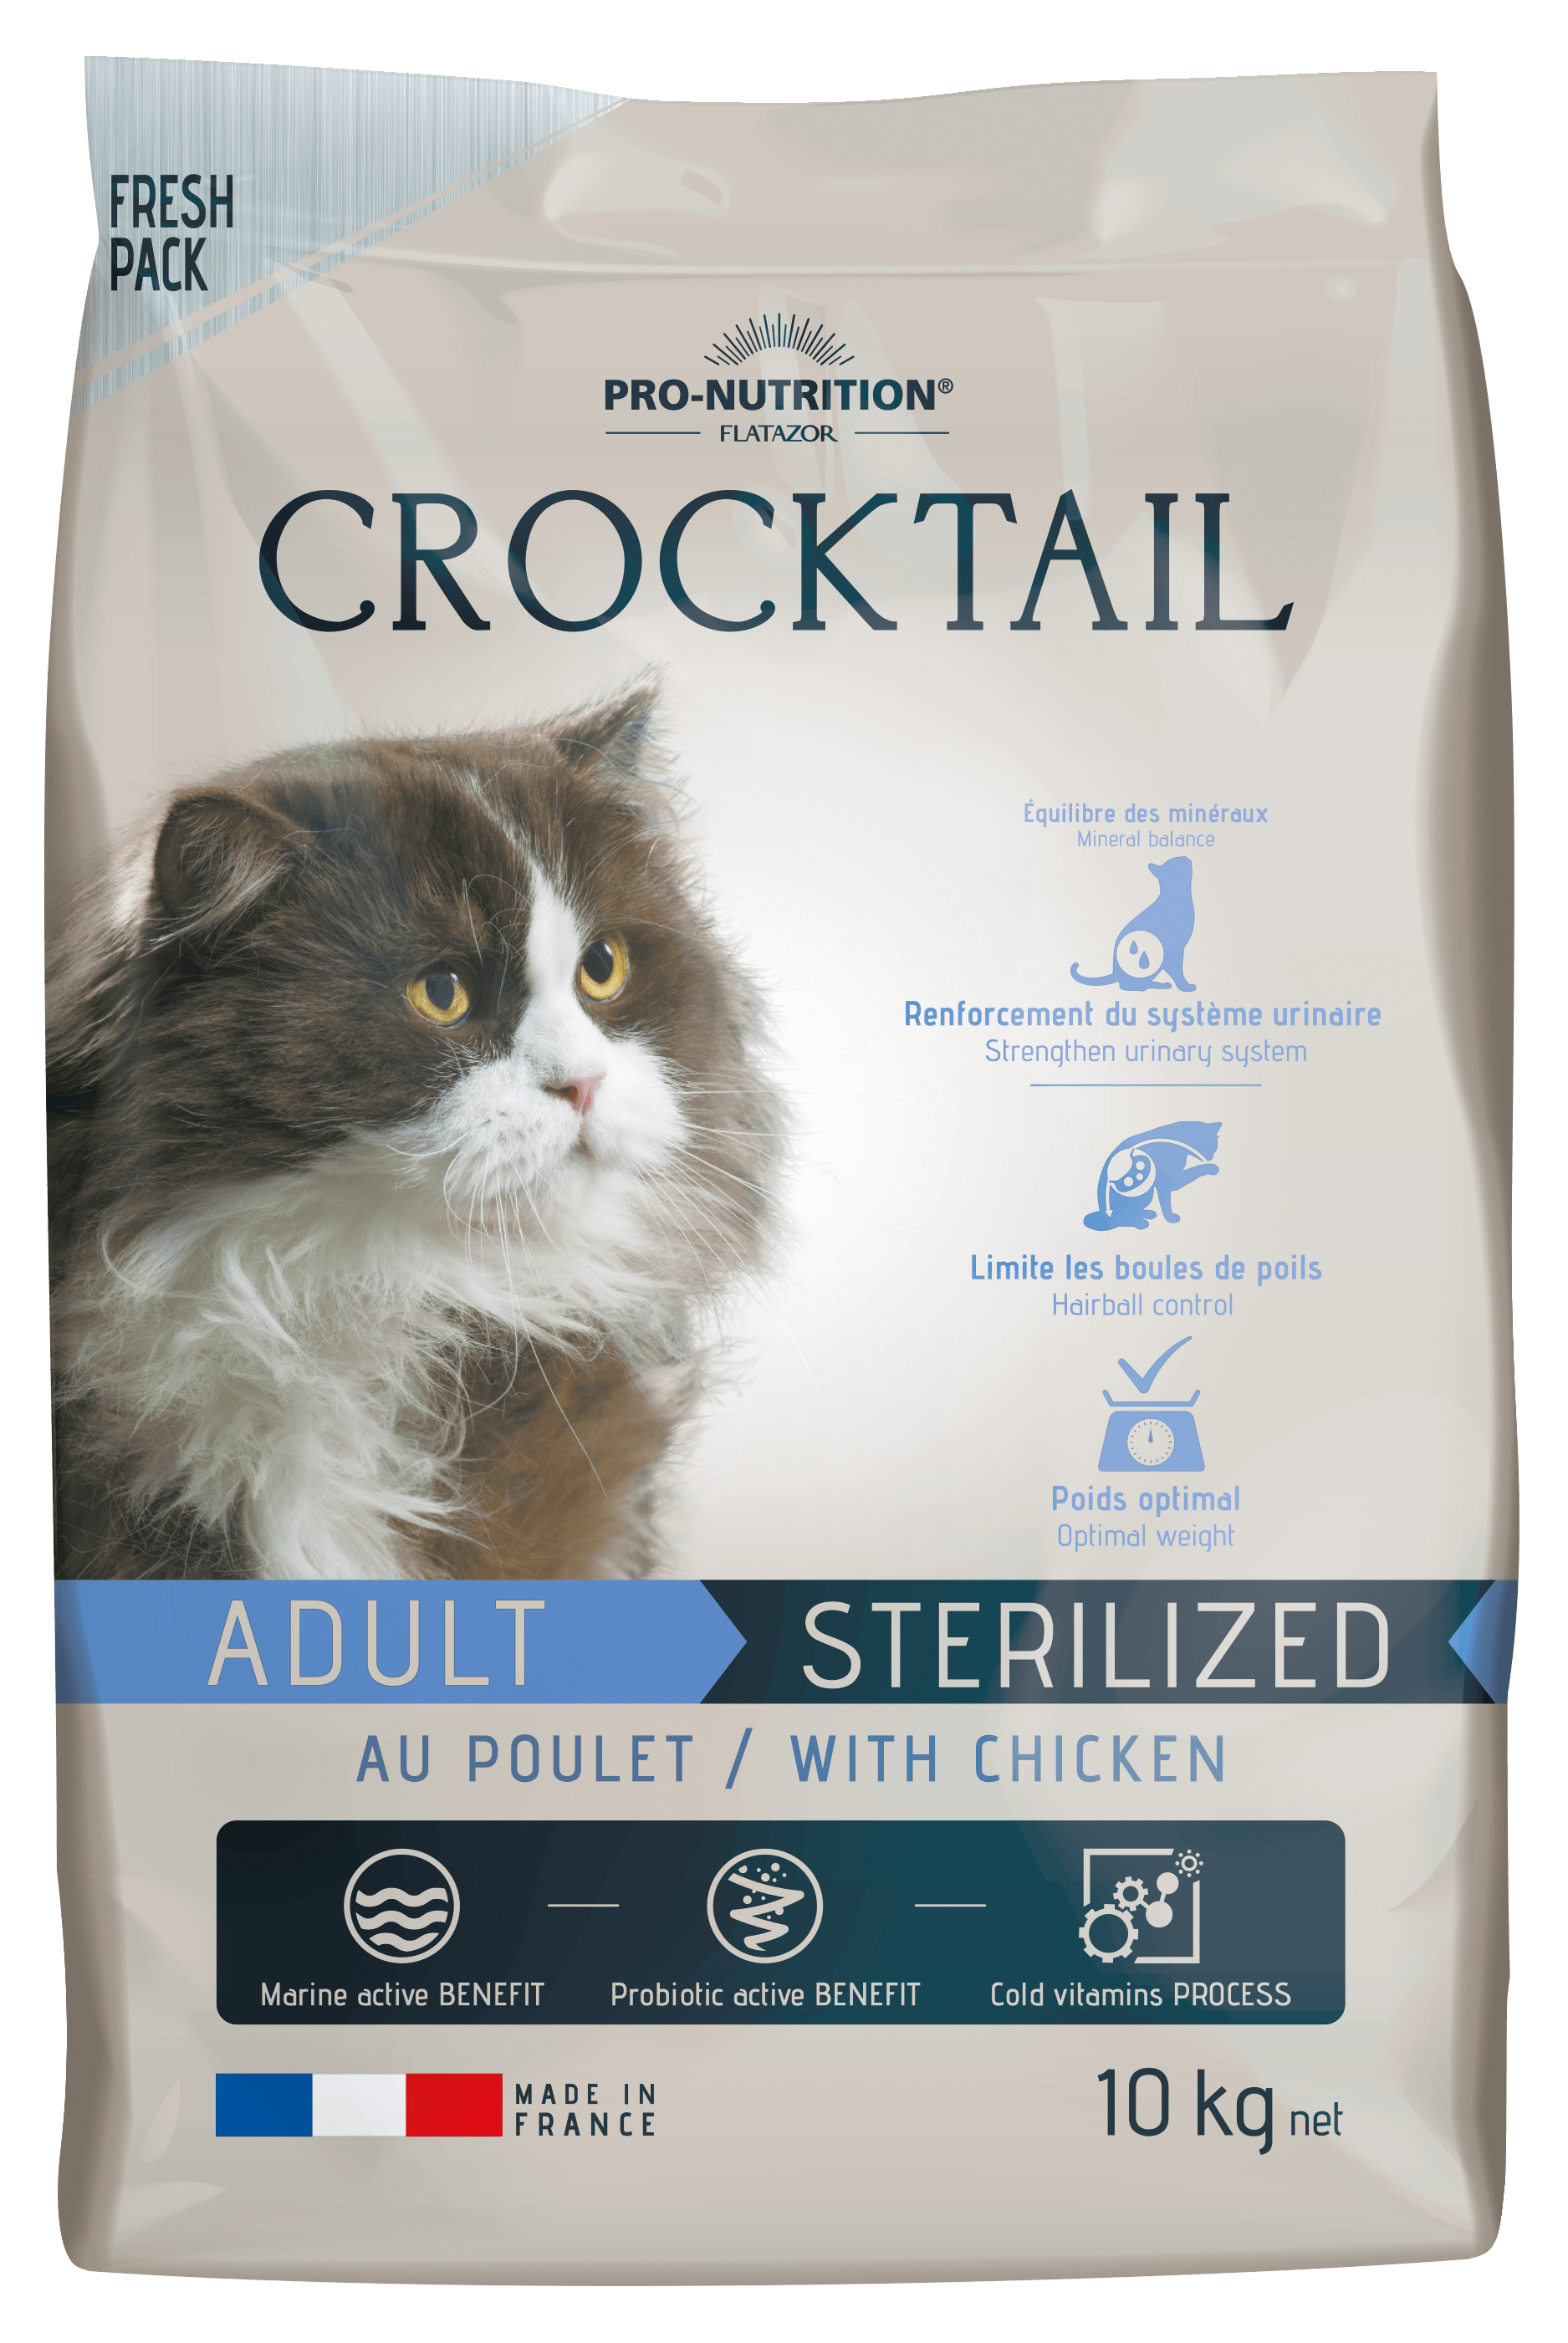 Crocktail